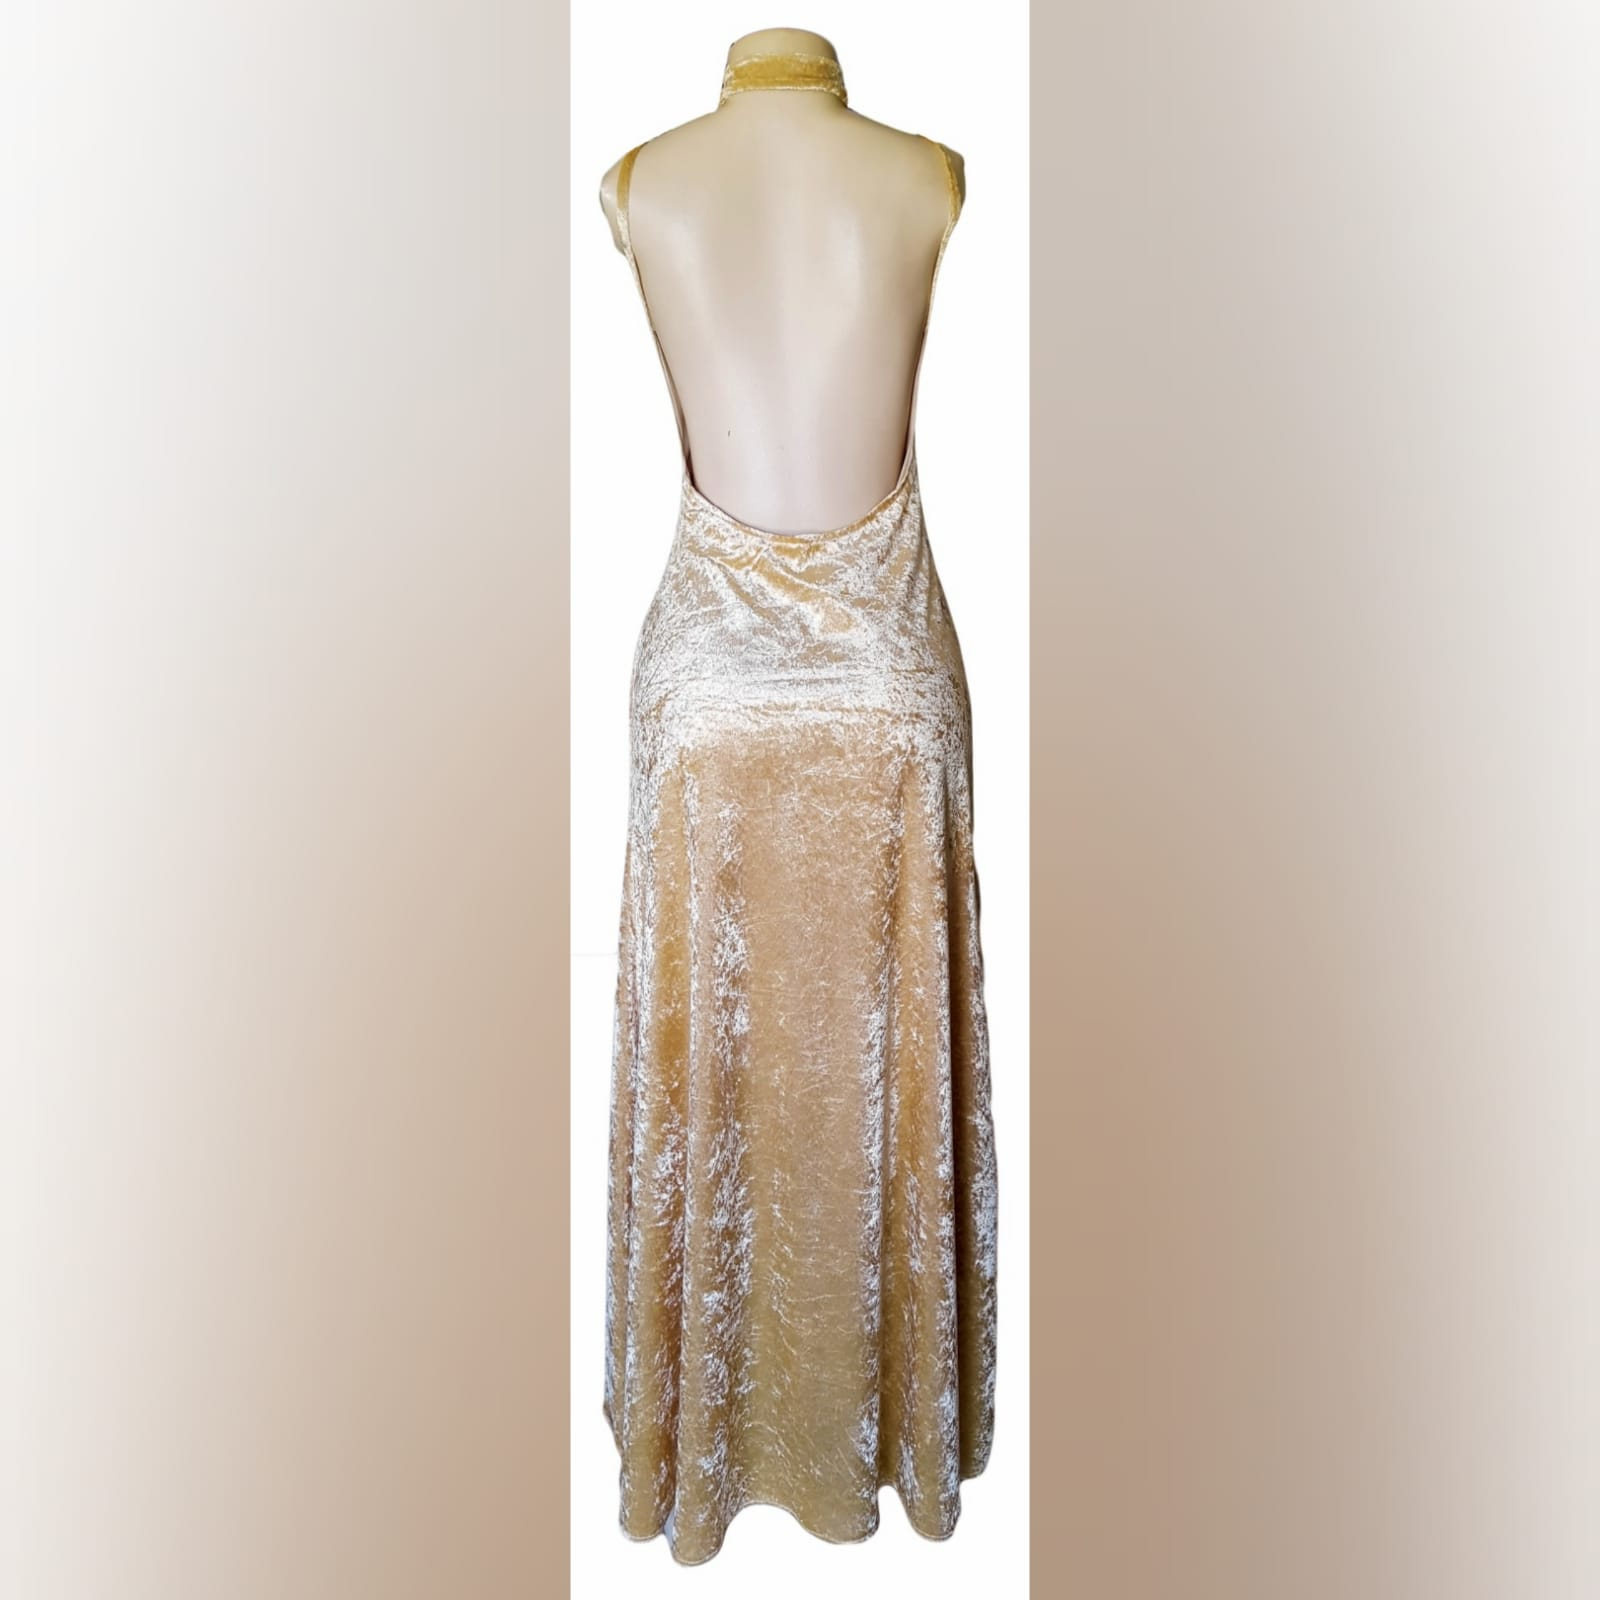 Champagne velvet long prom dress 4 champagne velvet long prom dress with a v neckline, rounded backless design with a high slit and a matching choker.